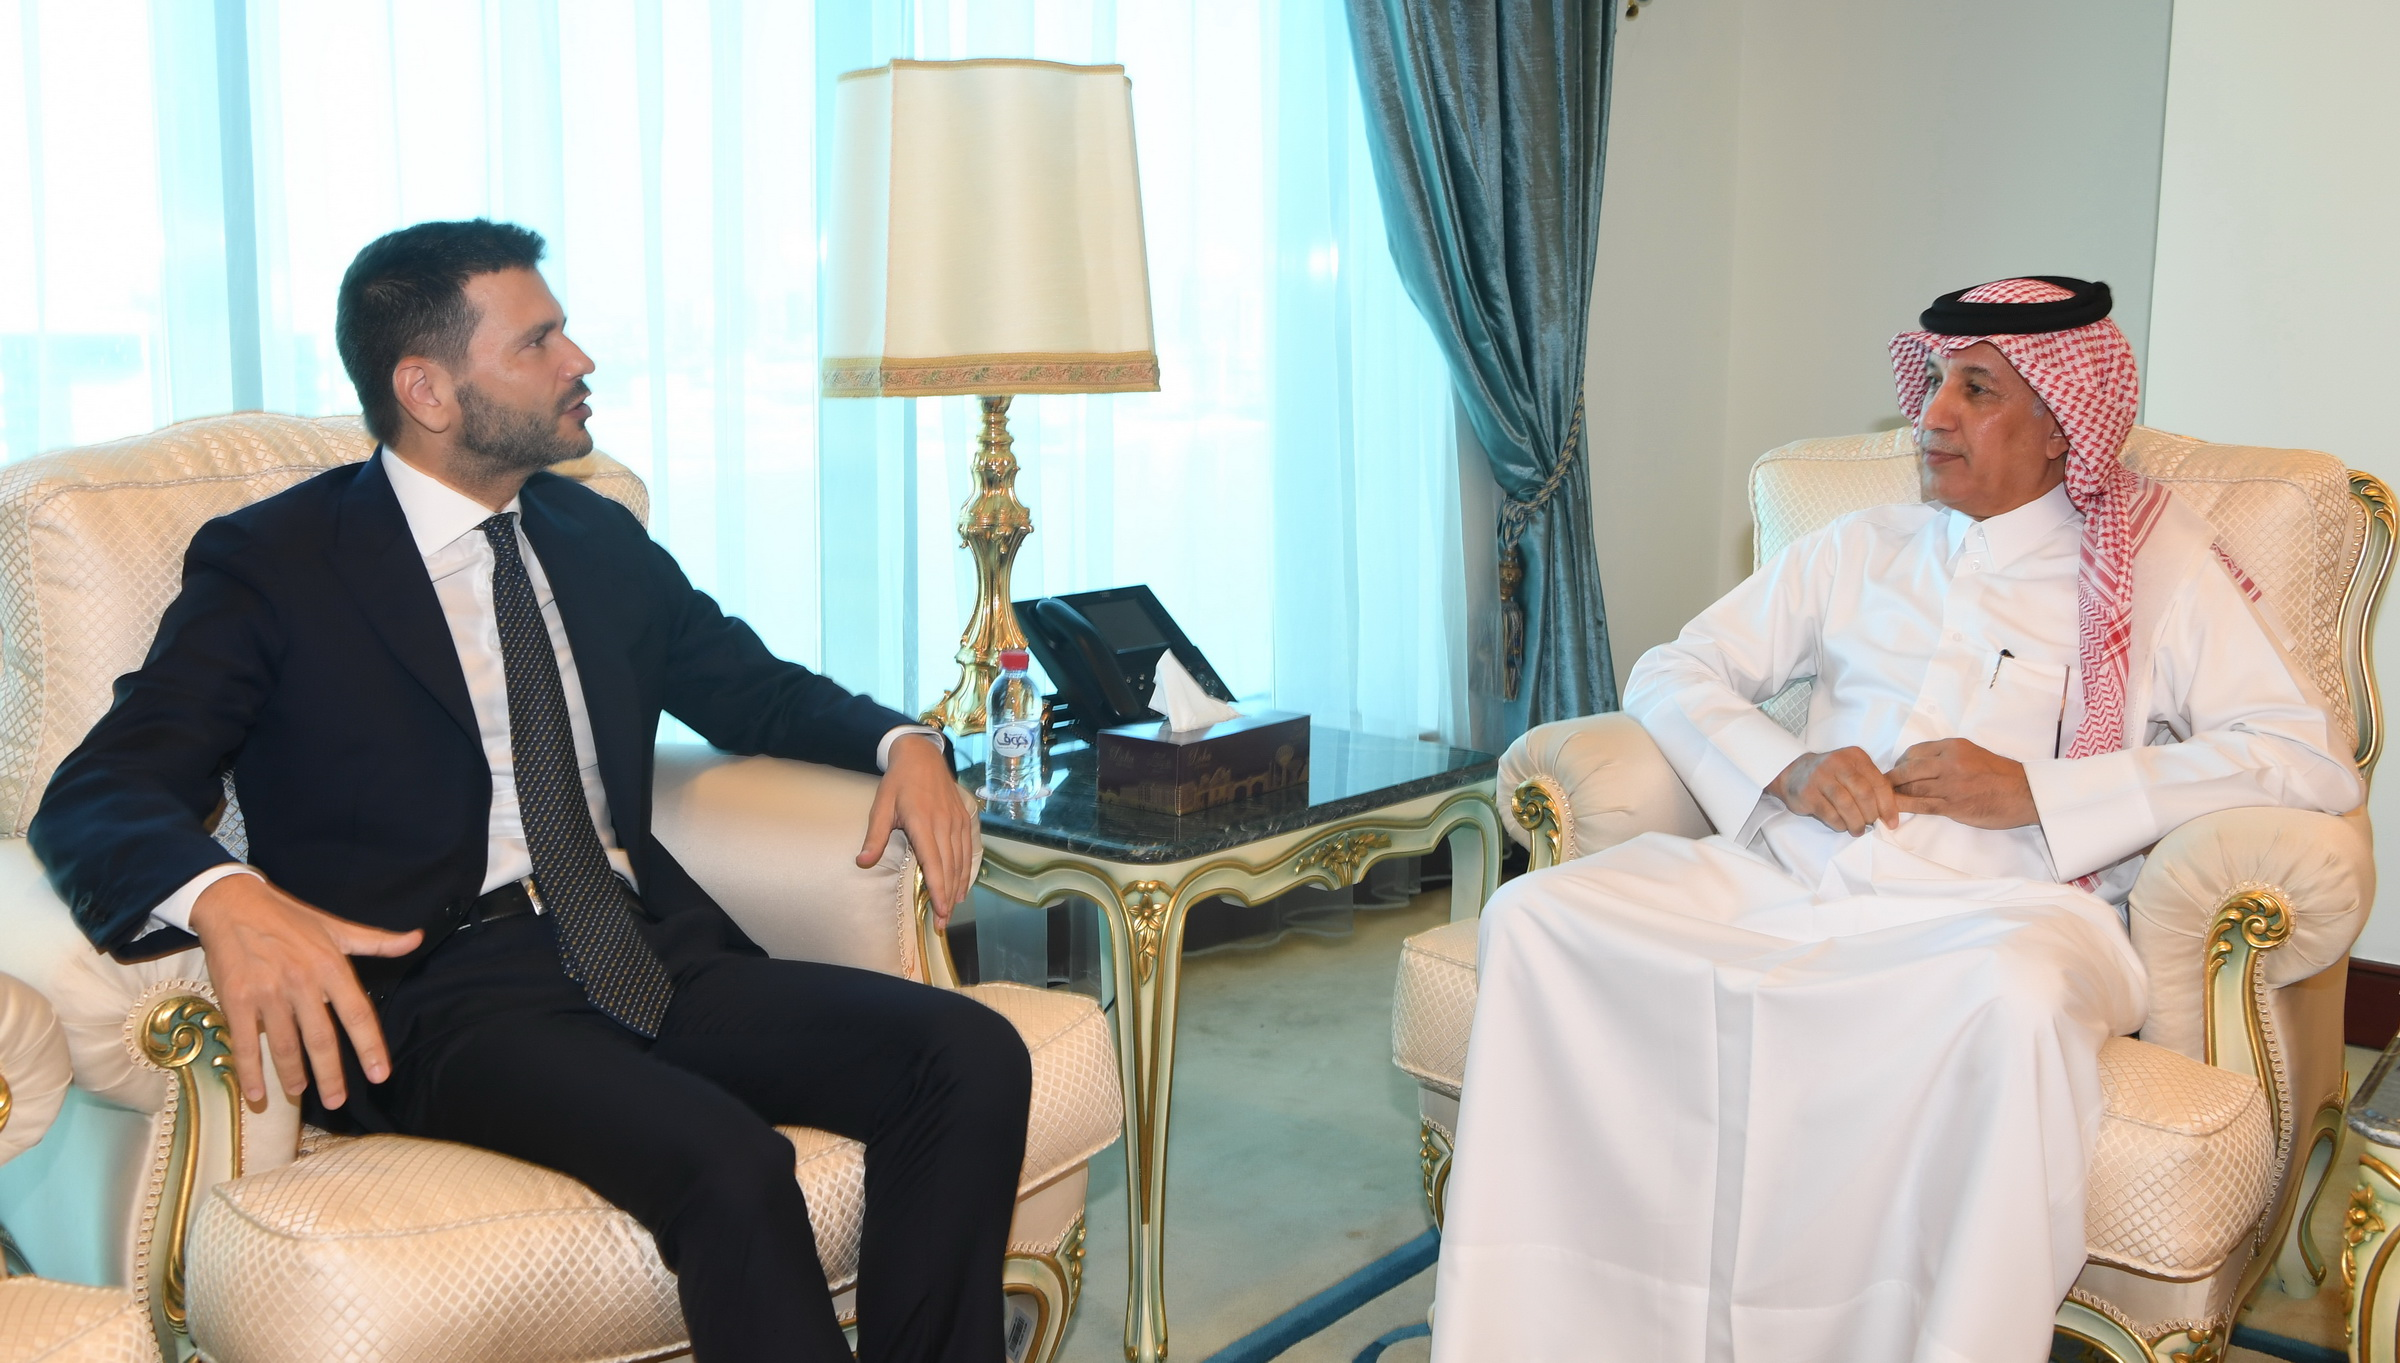 Minister of State for Foreign Affairs Meets Italian Ambassador